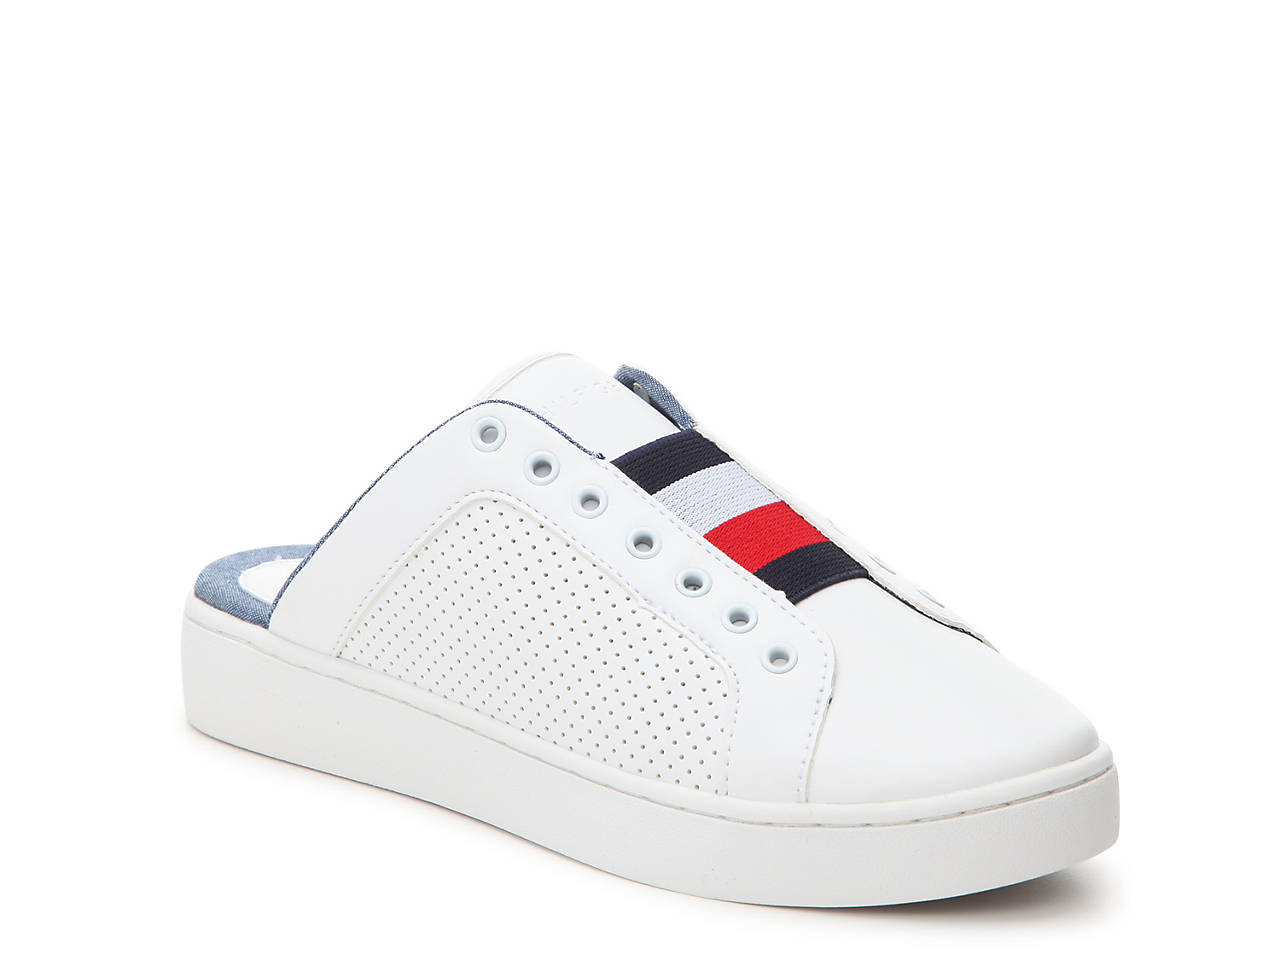 Tommy Hilfiger LIGHTWEIGHT CORPORATE - Slip-ons - white 8cnvTc